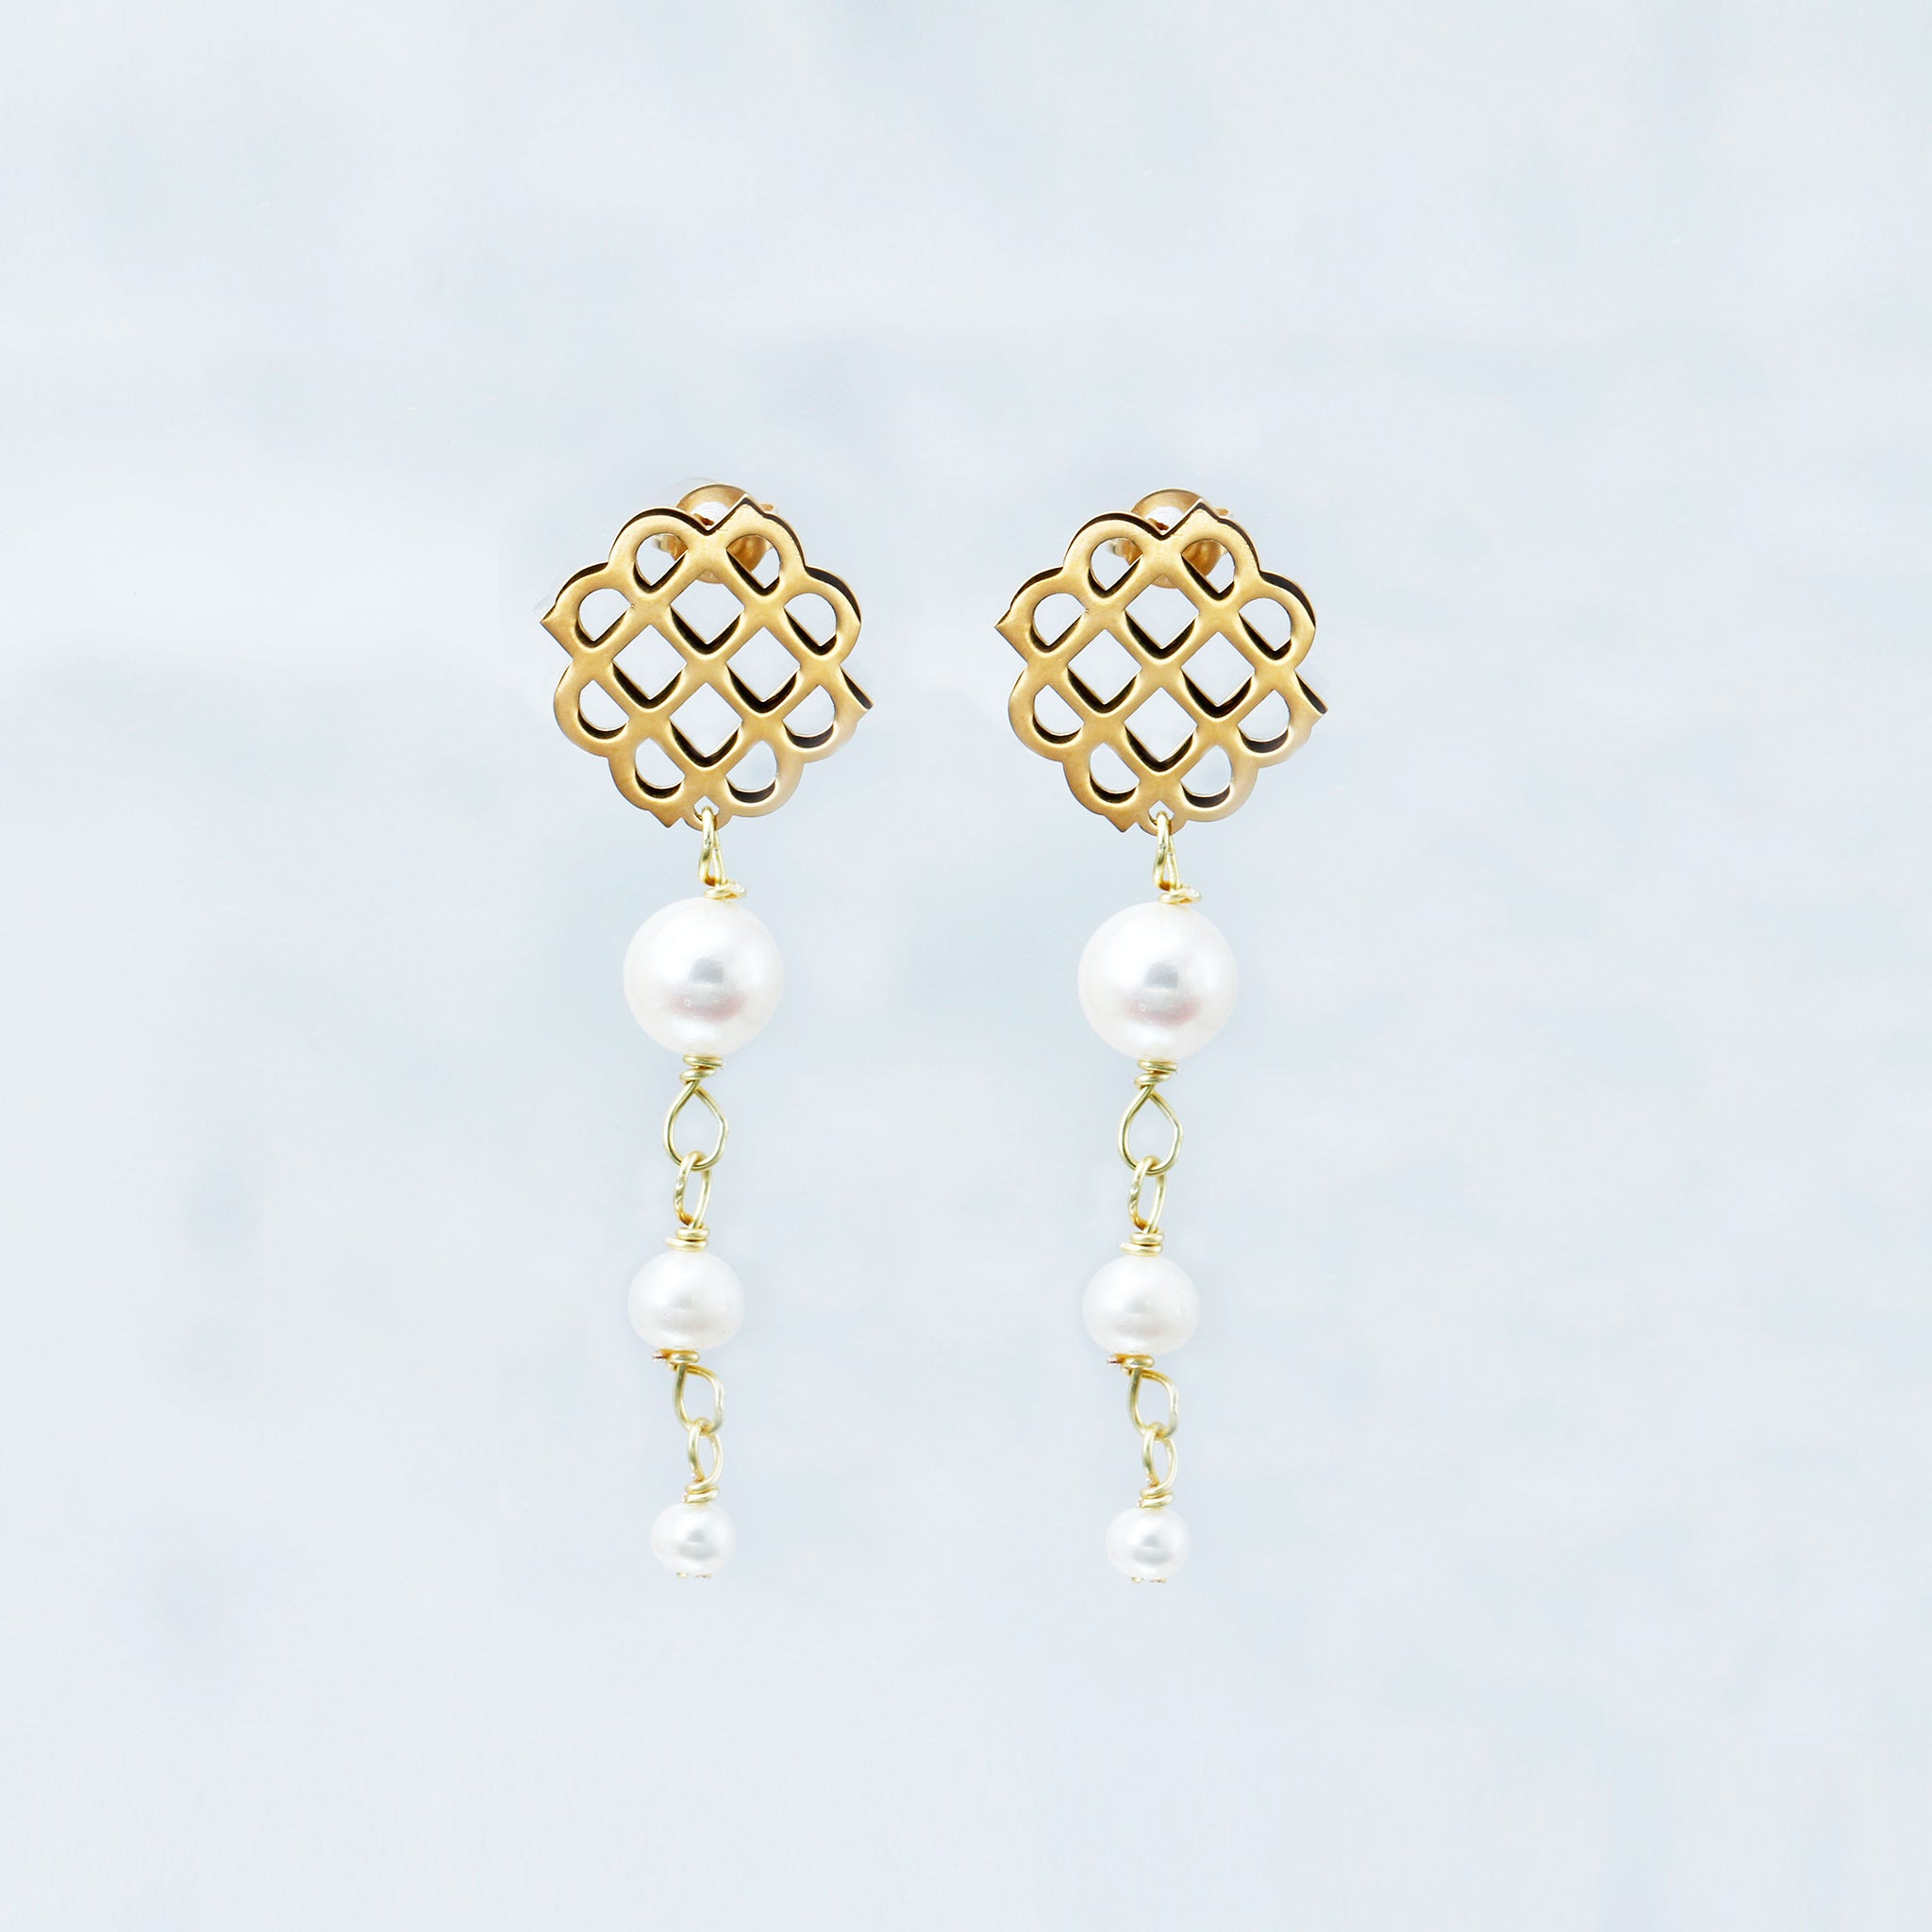 Millié Seis Earrings